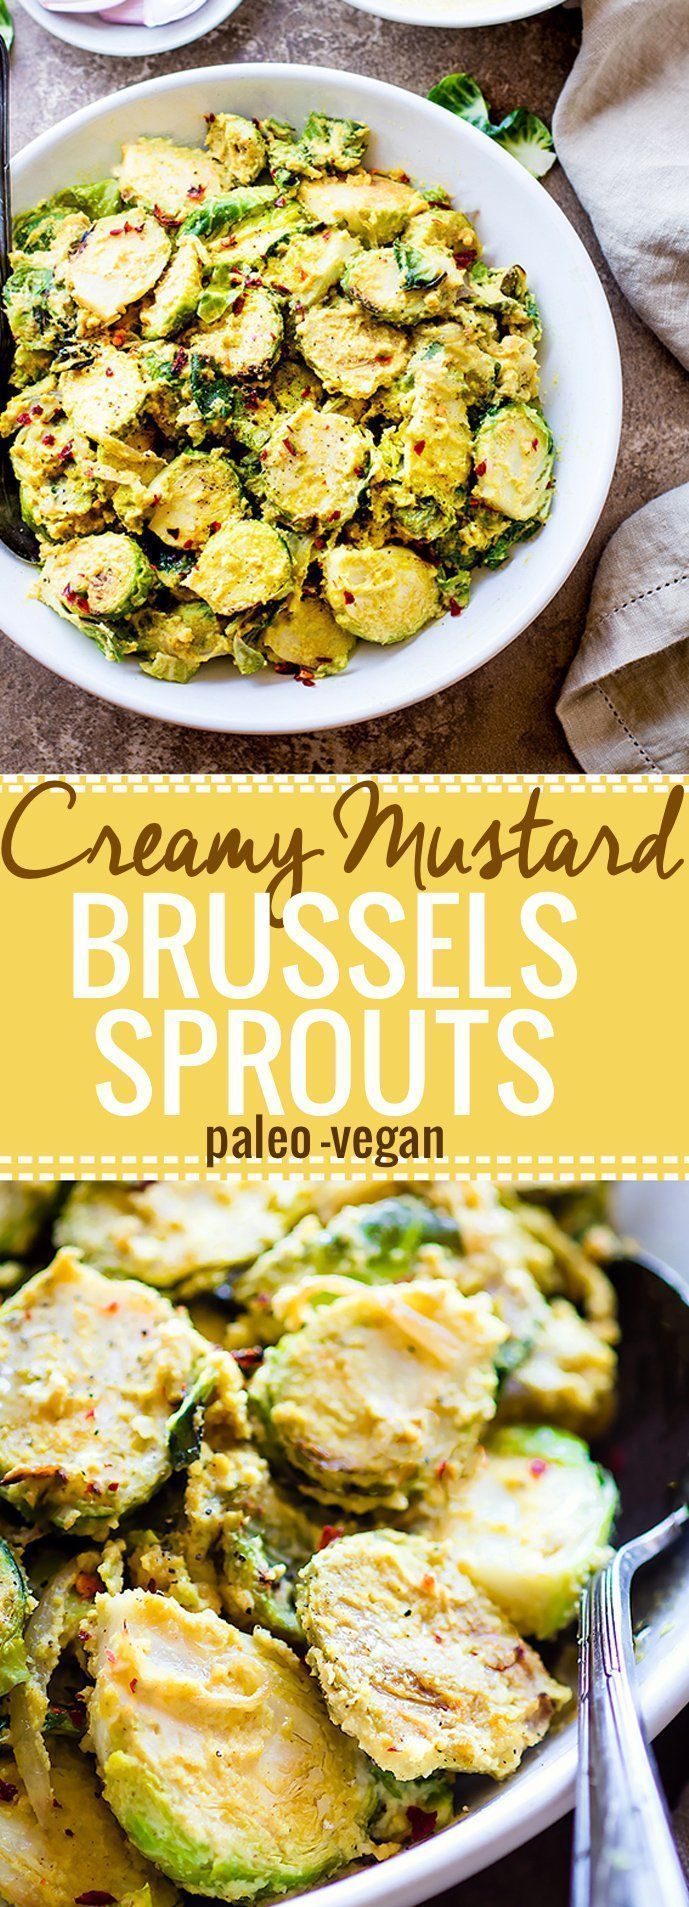 Sauteed Brussels Sprouts Salad with Creamy Mustard Sauce